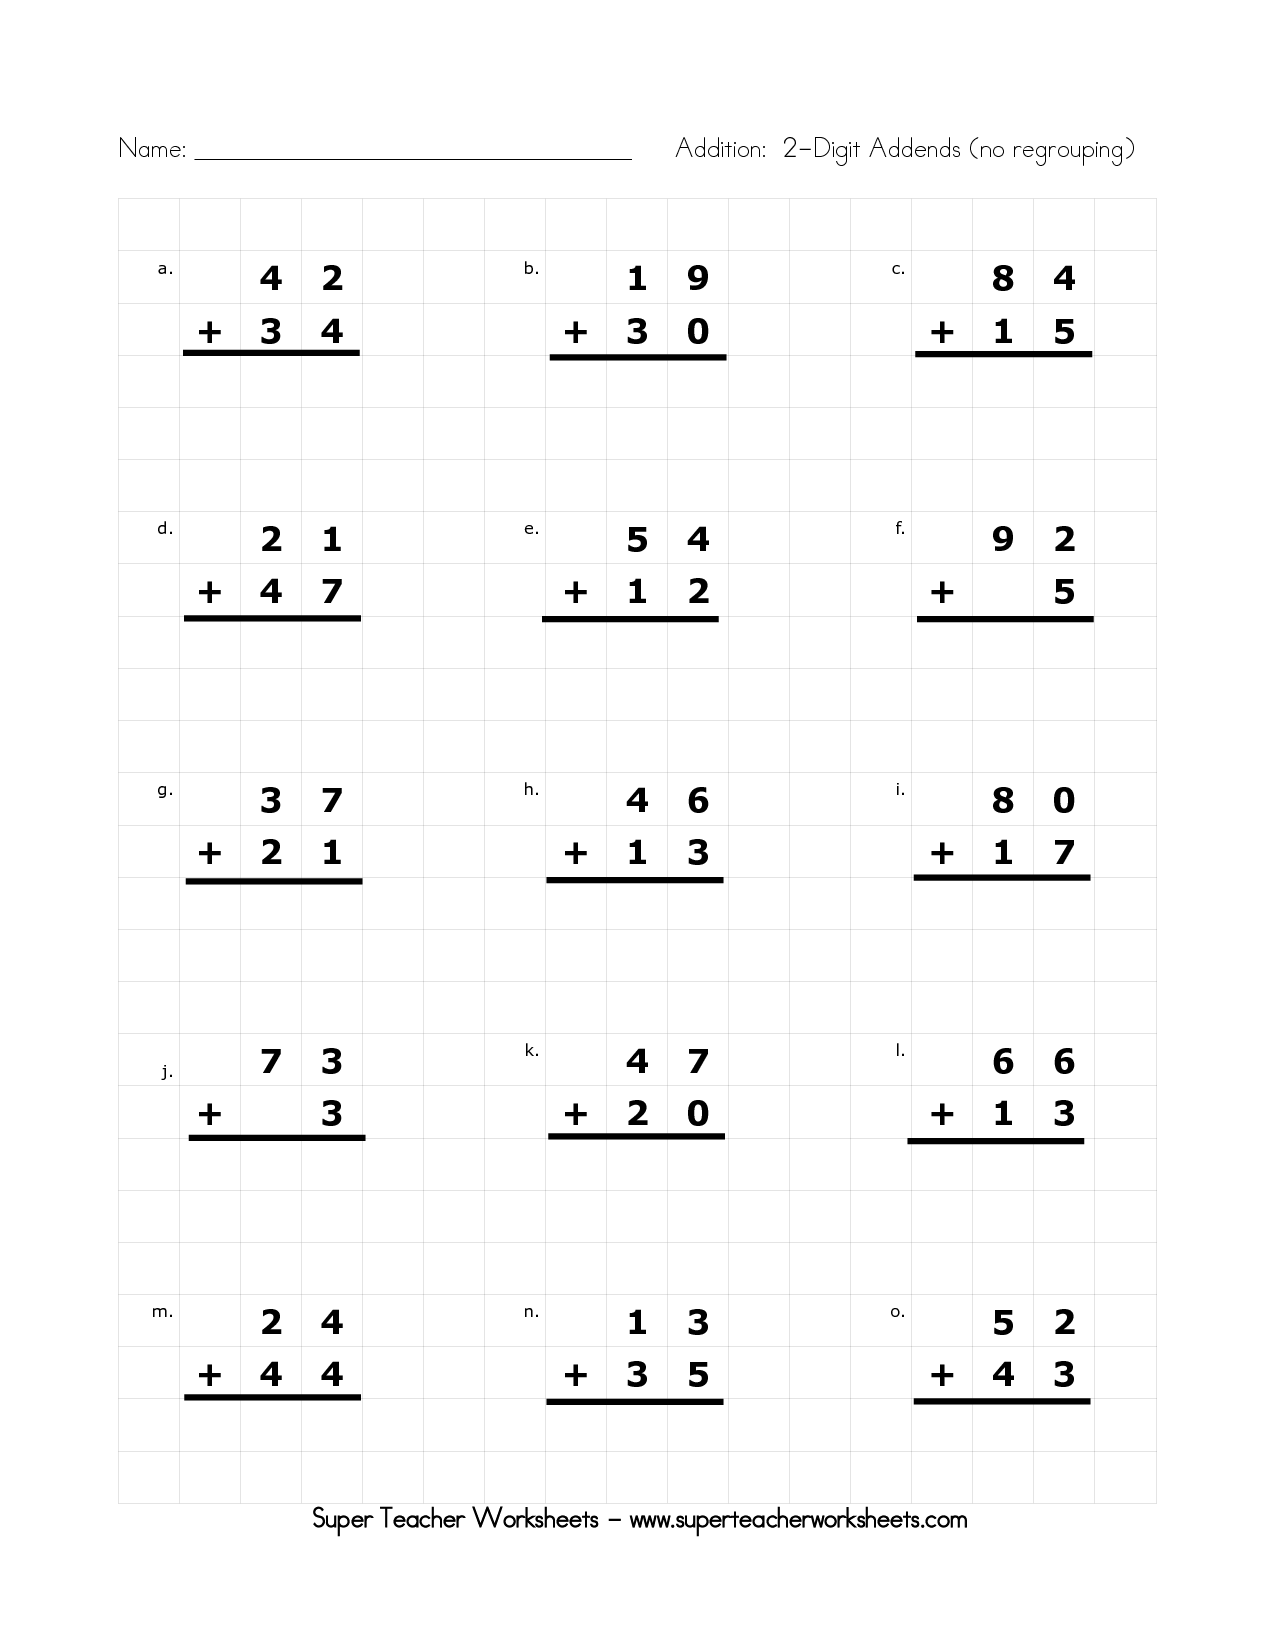 hight resolution of 2nd grade easy addition templates   Name Addition 2-Digit Addends (no  regrouping)   Addition worksheets